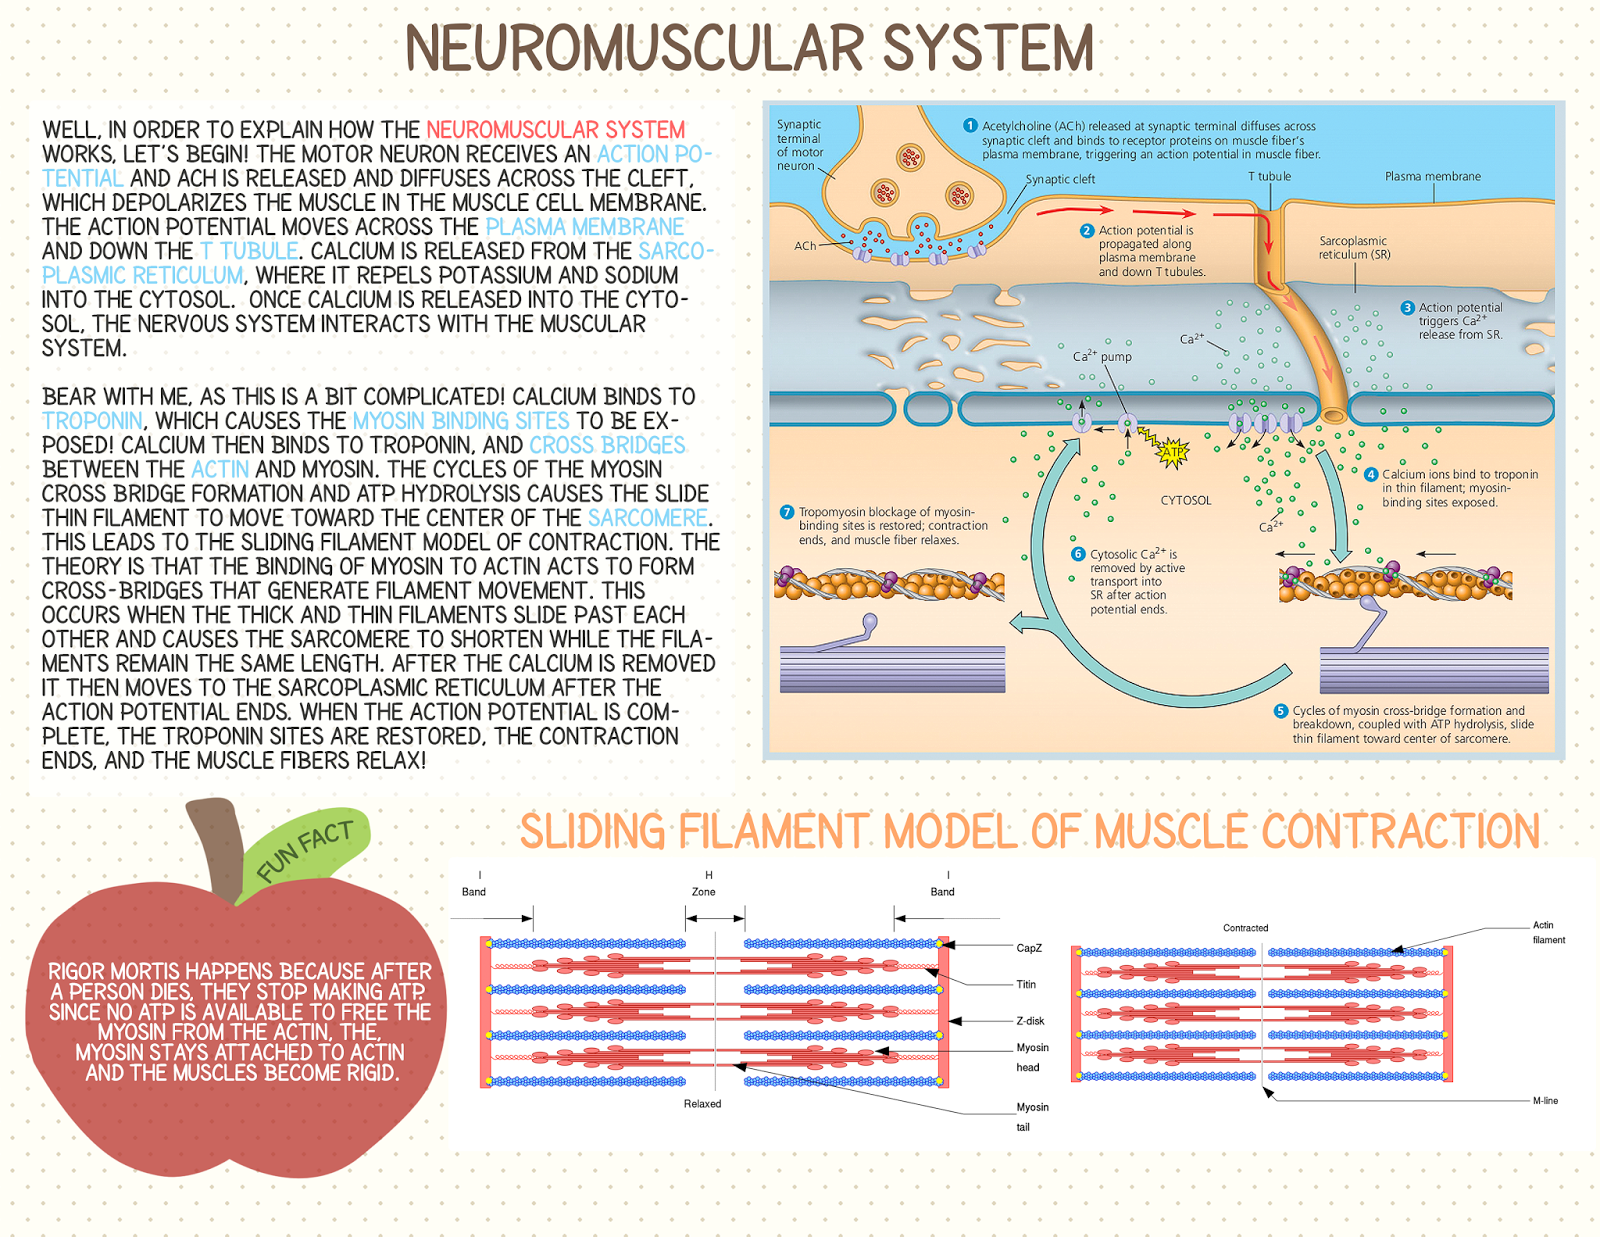 the neuromuscular system Functional connectivity in the neuromuscular system underlying bimanual coordination ingmar e j de vries,1 andreas daffertshofer,1 dick f.